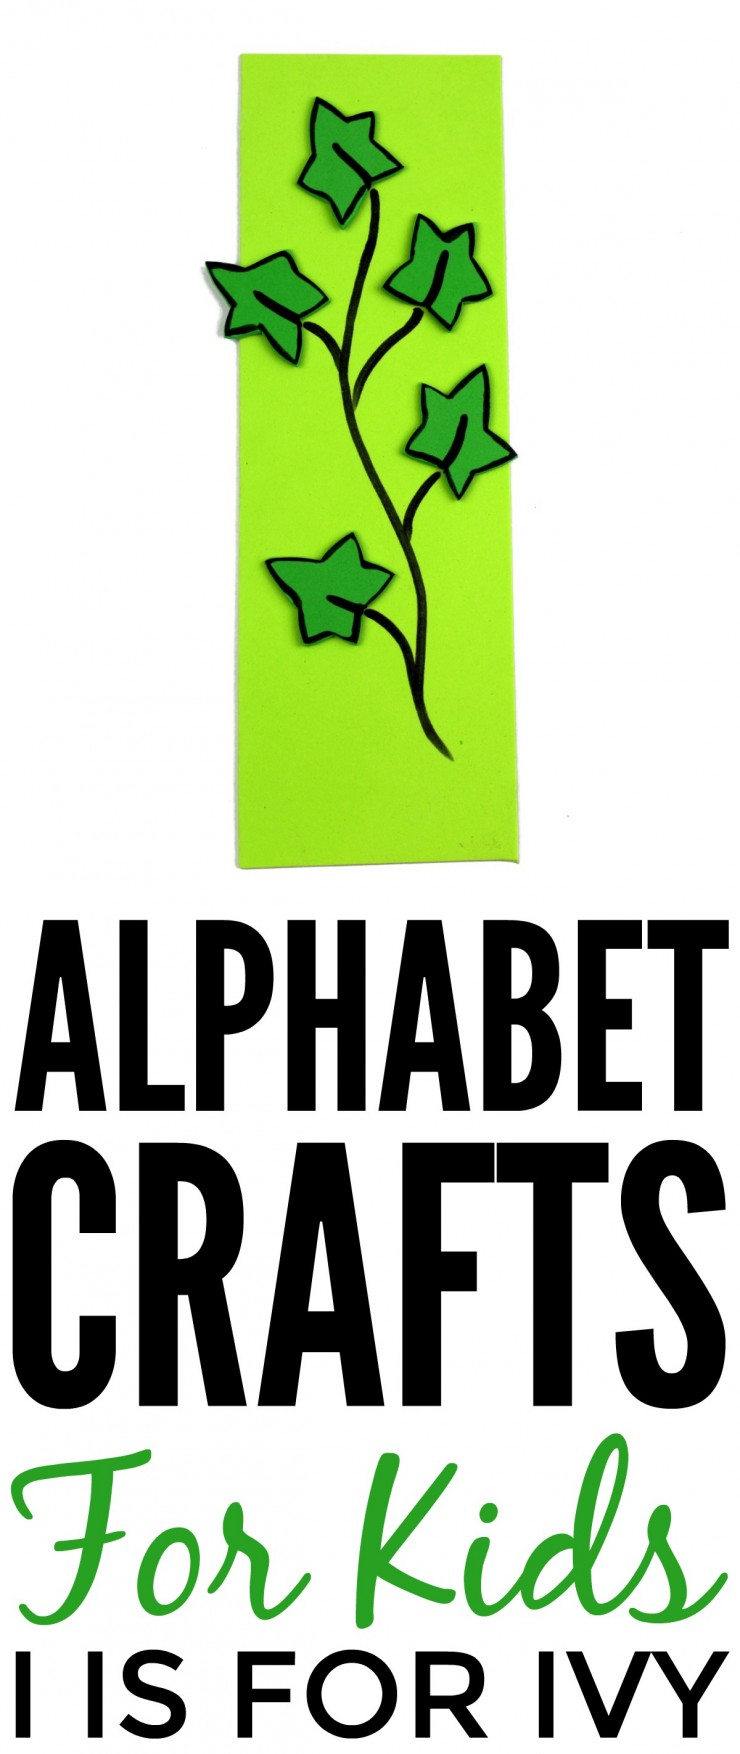 This week is my series of ABCs kids crafts featuring the Alphabet, we are doing a I is for Ivy craft. These Alphabet Crafts For Kids are a fun way to introduce your child to the alphabet.